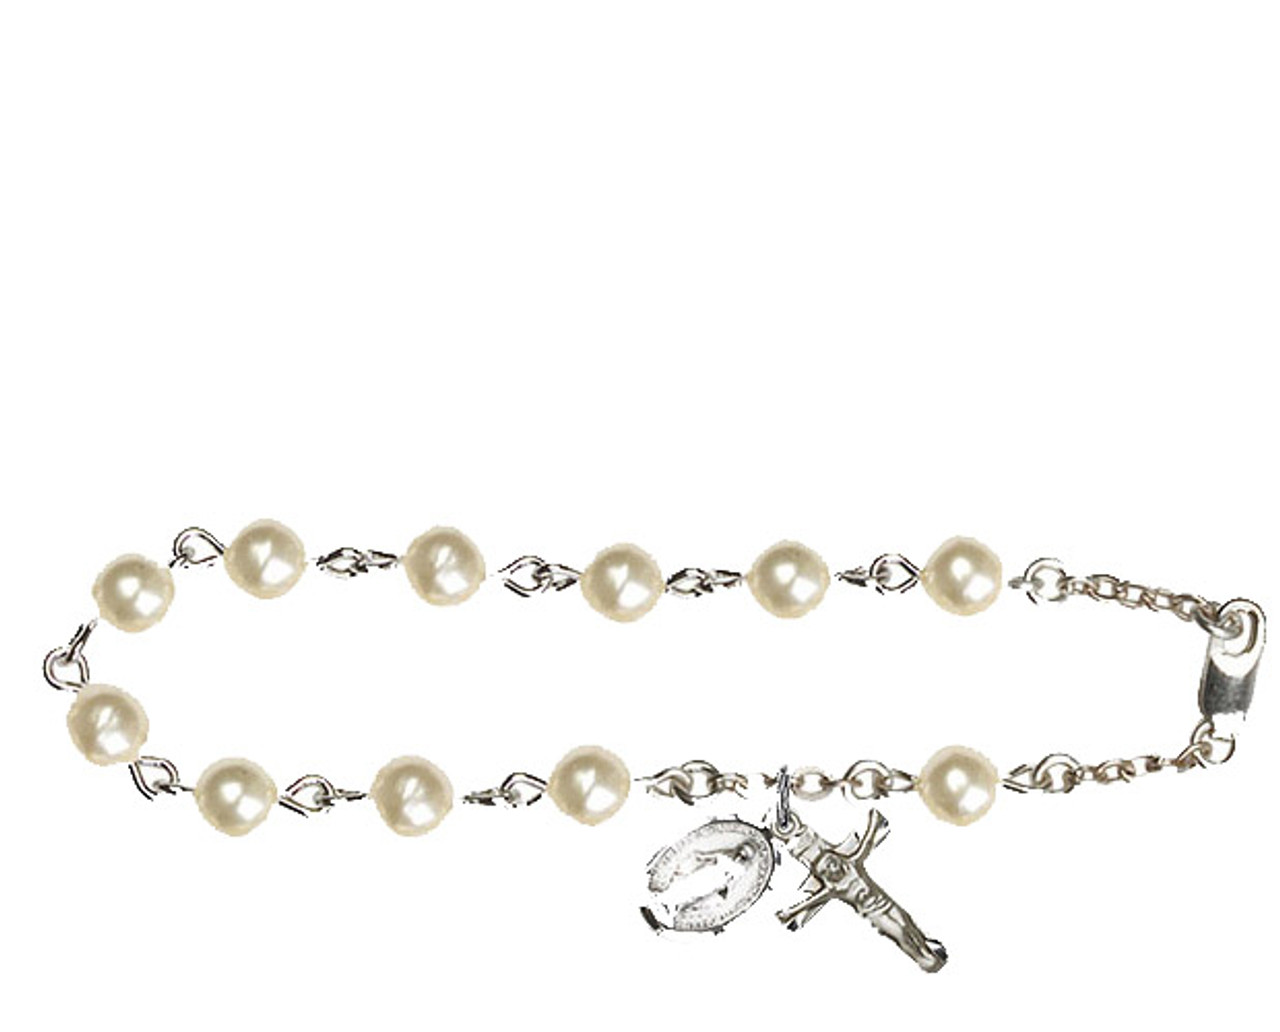 Bliss Faux Pearl Beads Rosary Bracelet